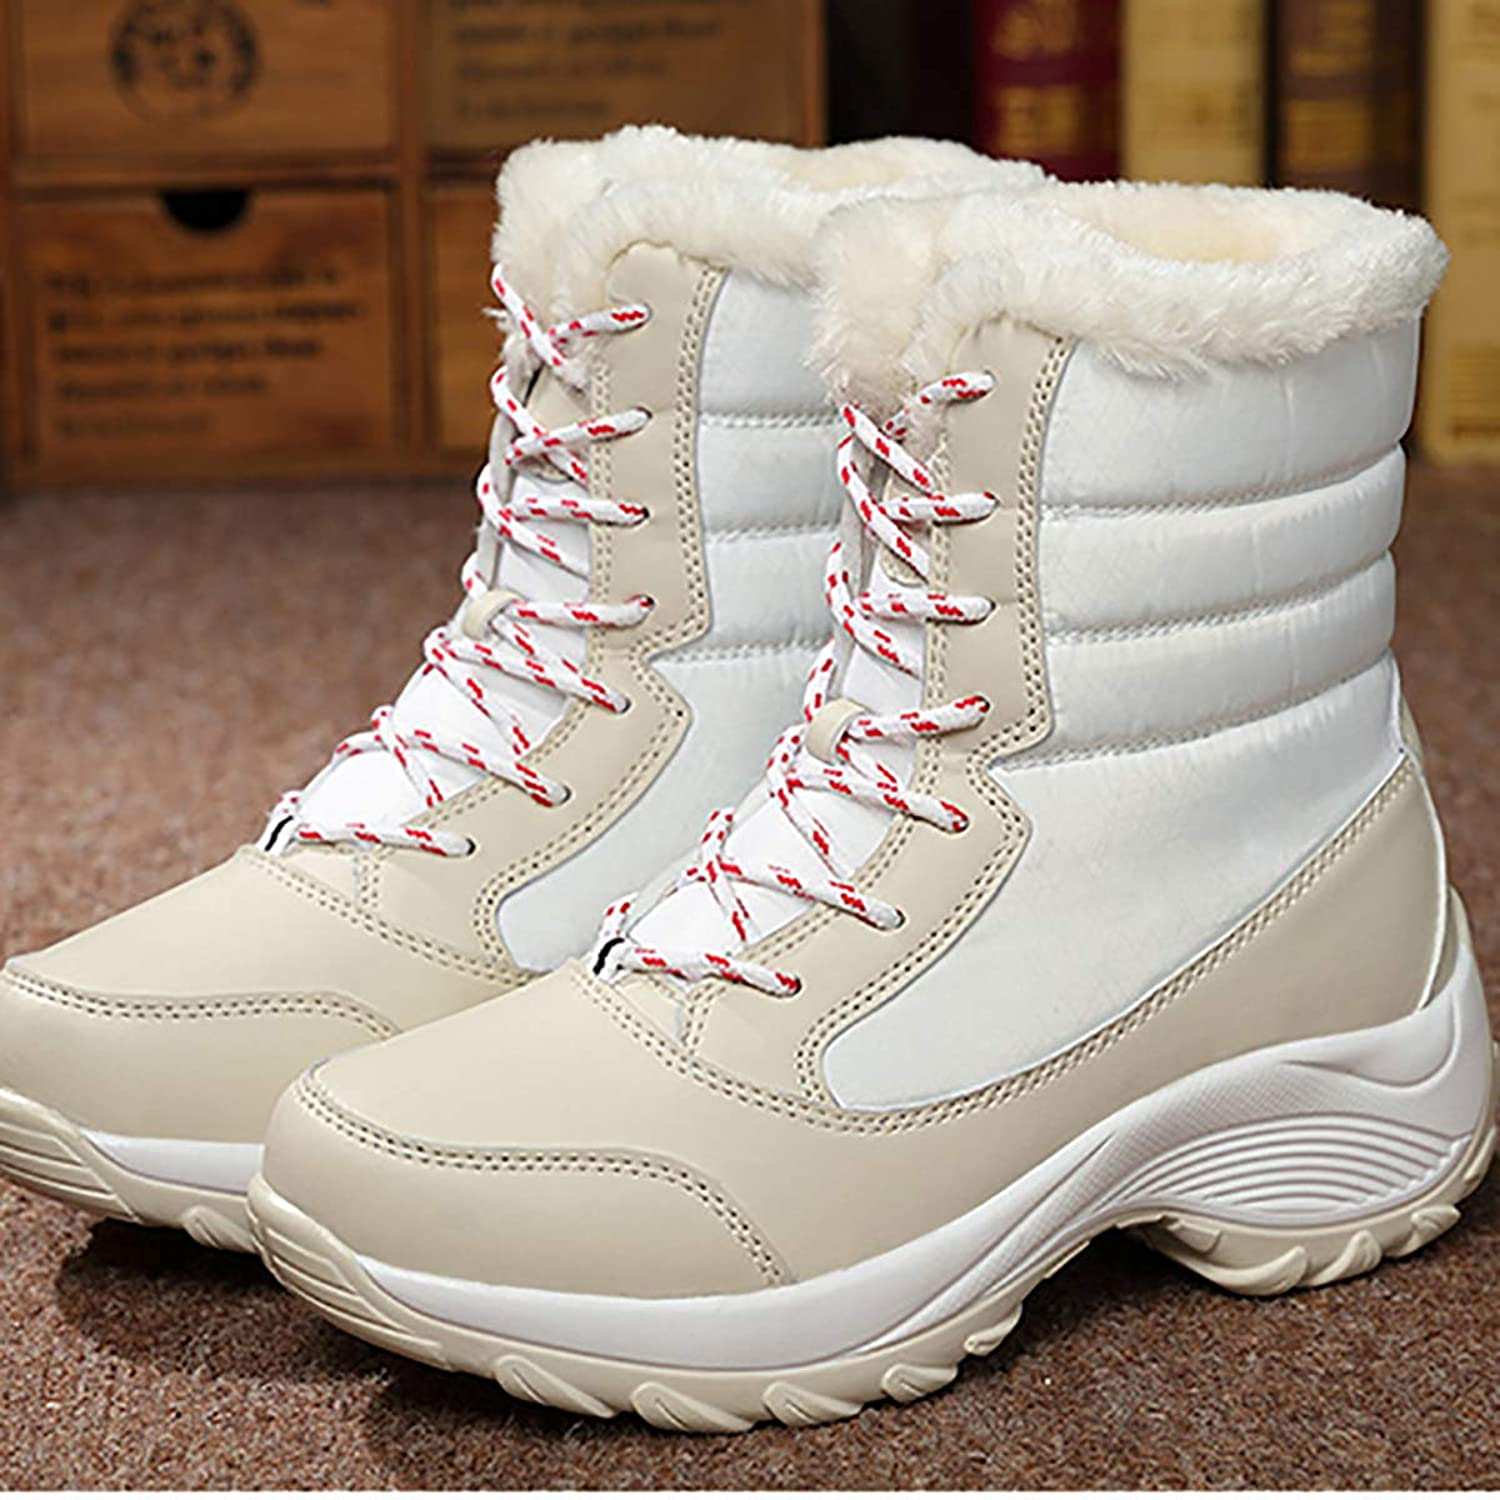 Snow Boots Couple Men and Women with Winter shoes, Warm Large Size Snow shoes, Black Warm Women's Tube,White,38